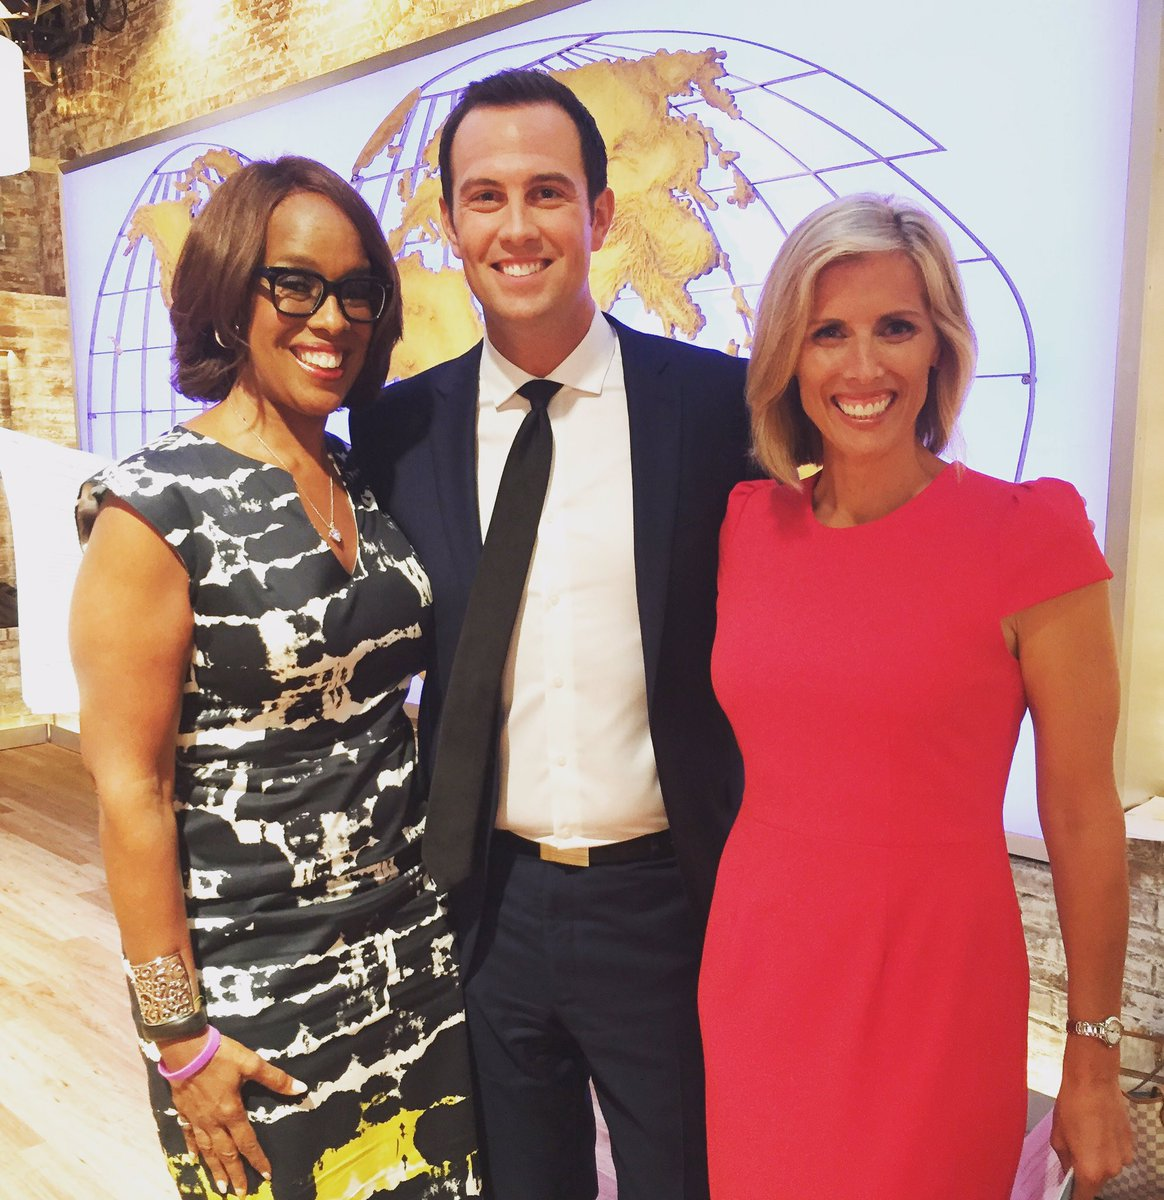 #WBZ does NYC! Thanks @CBSThisMorning and @GayleKing for having us! #RealNews #Boston #CBS <br>http://pic.twitter.com/7ZSBRU1nOM